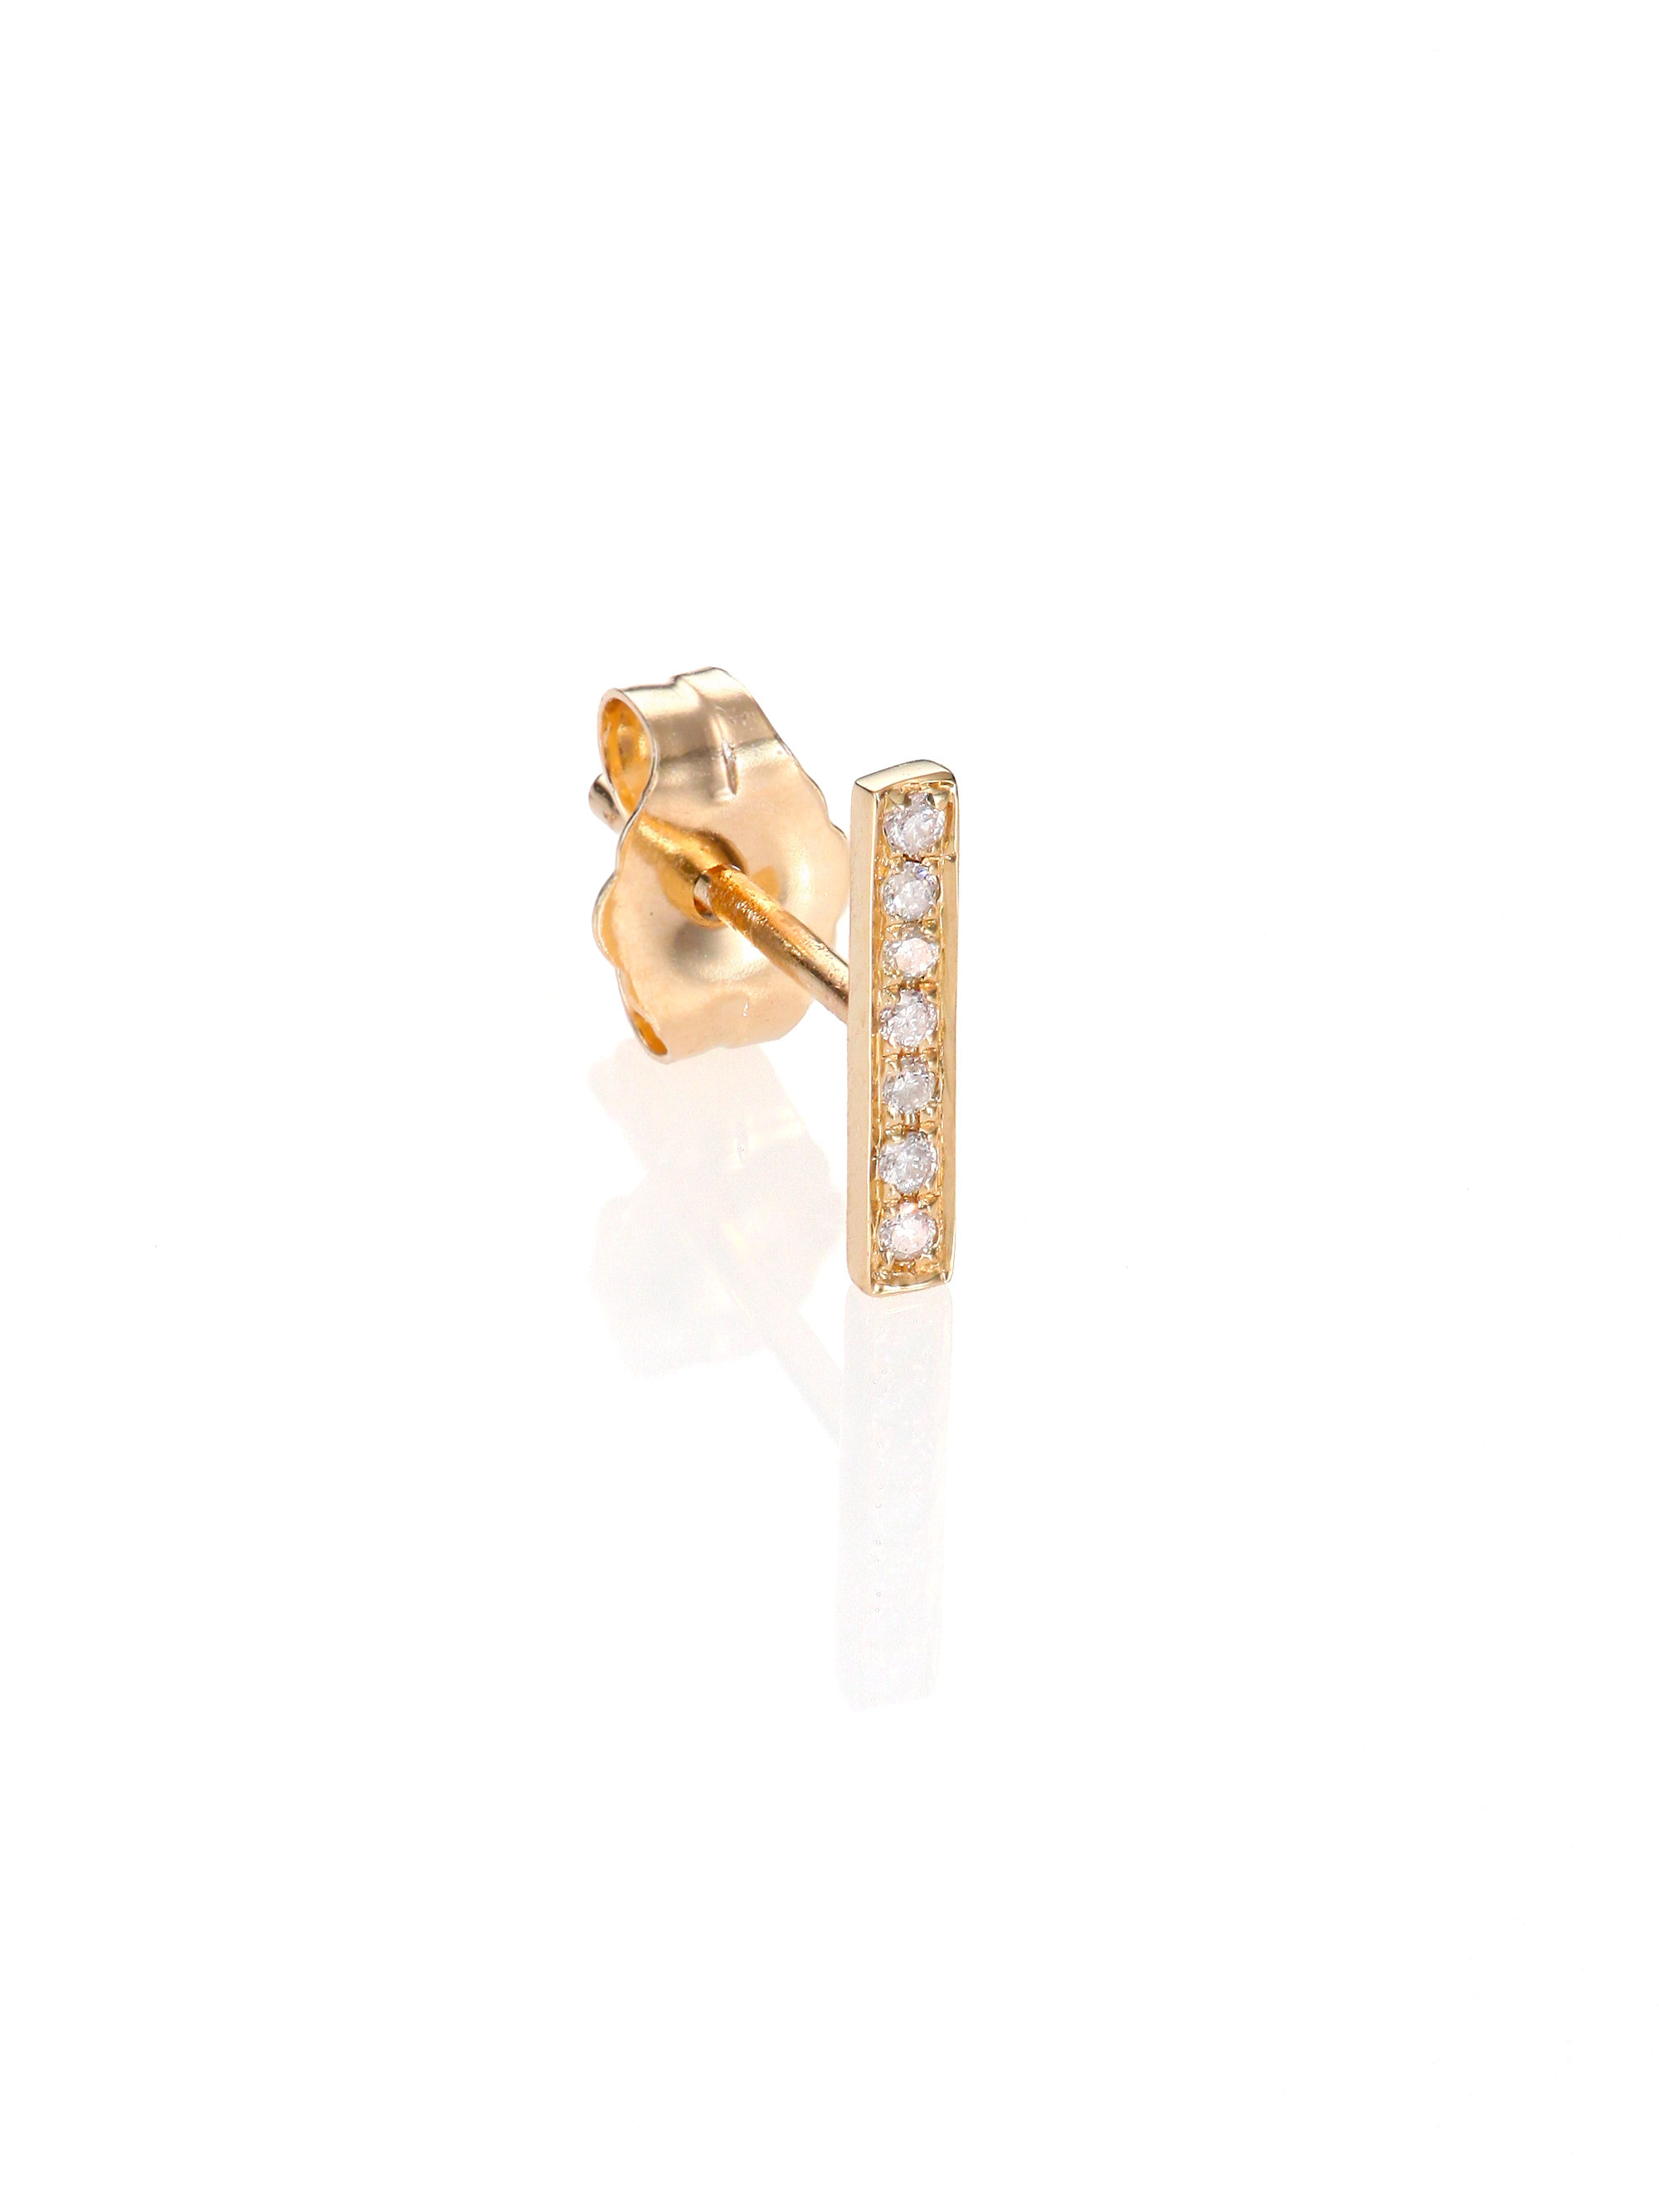 Sydney Evan 14k Gold Diamond Cross Single Stud Earring 7QhJ4